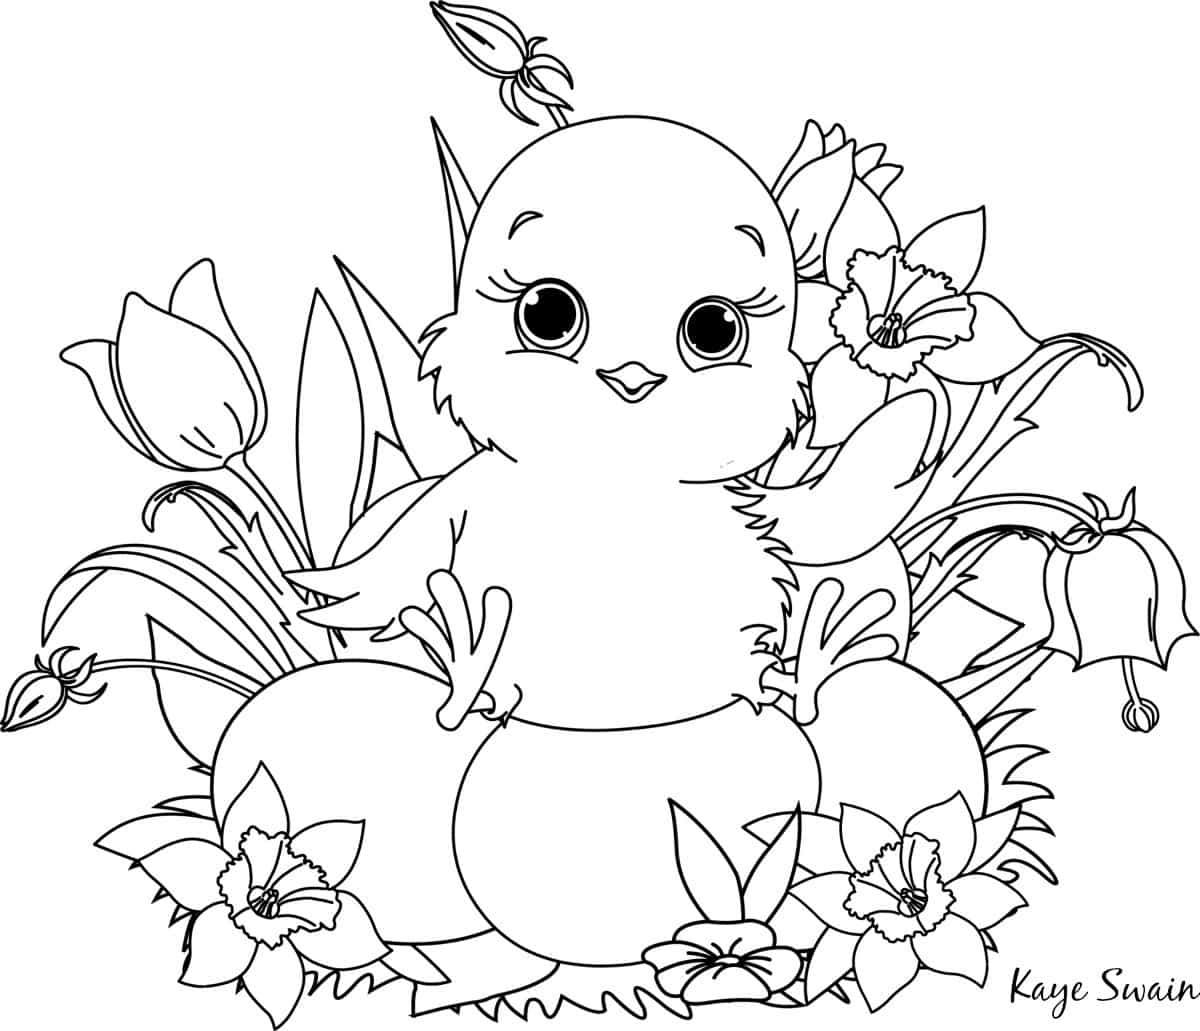 easter chick colouring easter cute chick coloring page easter chick colouring